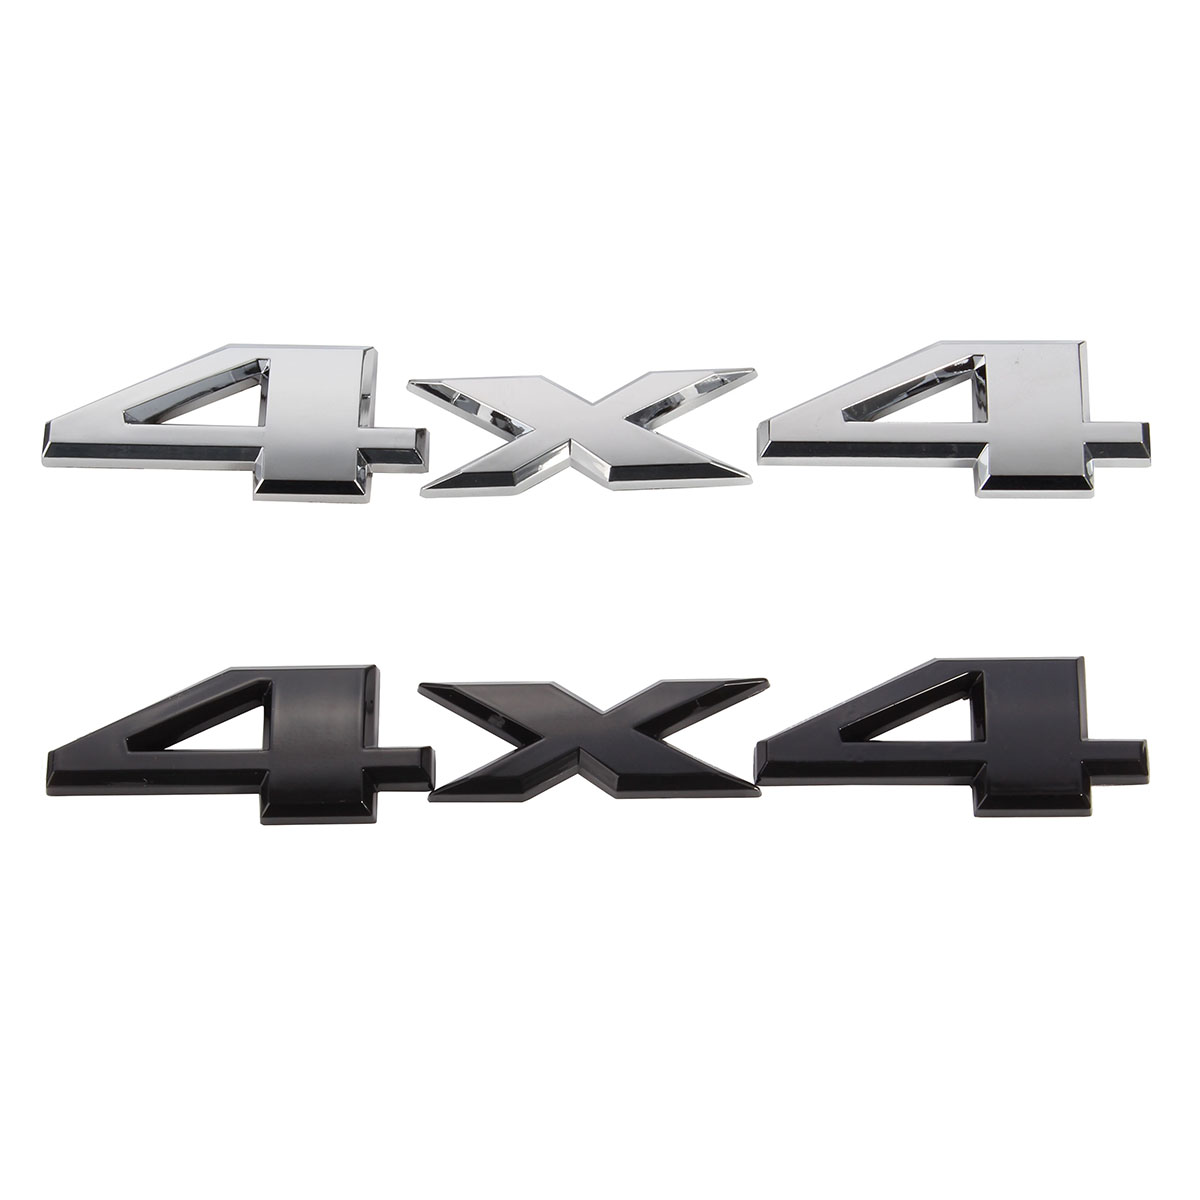 3D 4x4 Emblem Badge Car Sticker Logo Decal For Jeep /Grand /Cherokee Black Silver auto chrome camaro letters for 1968 1969 camaro emblem badge sticker